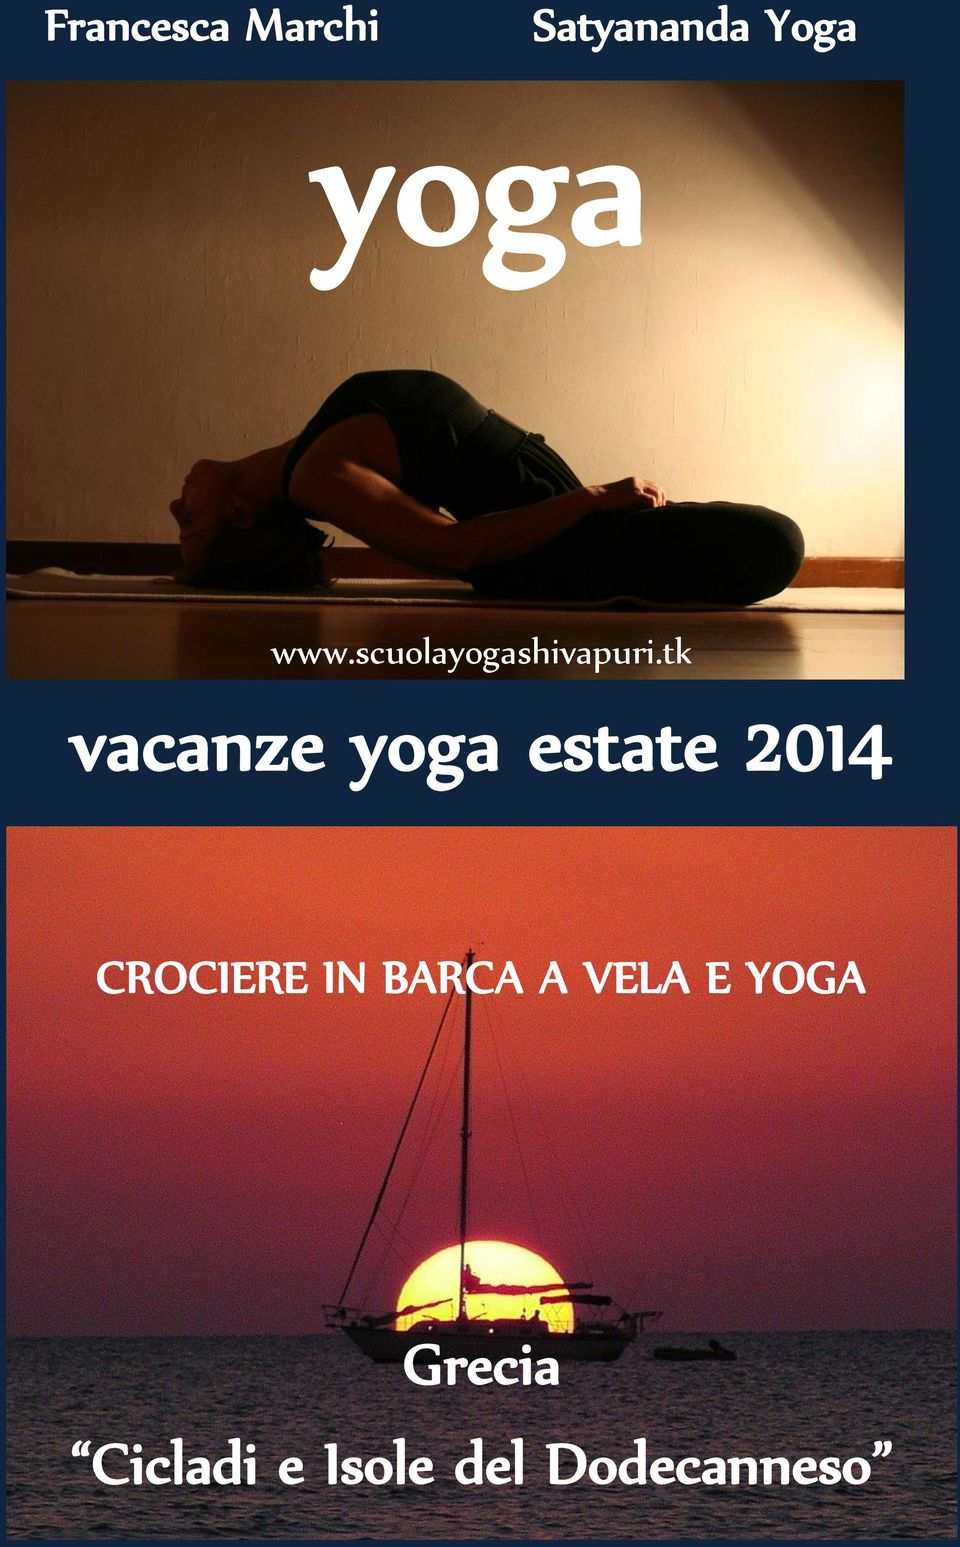 tk vacanze yoga estate 2014 CROCIERE IN